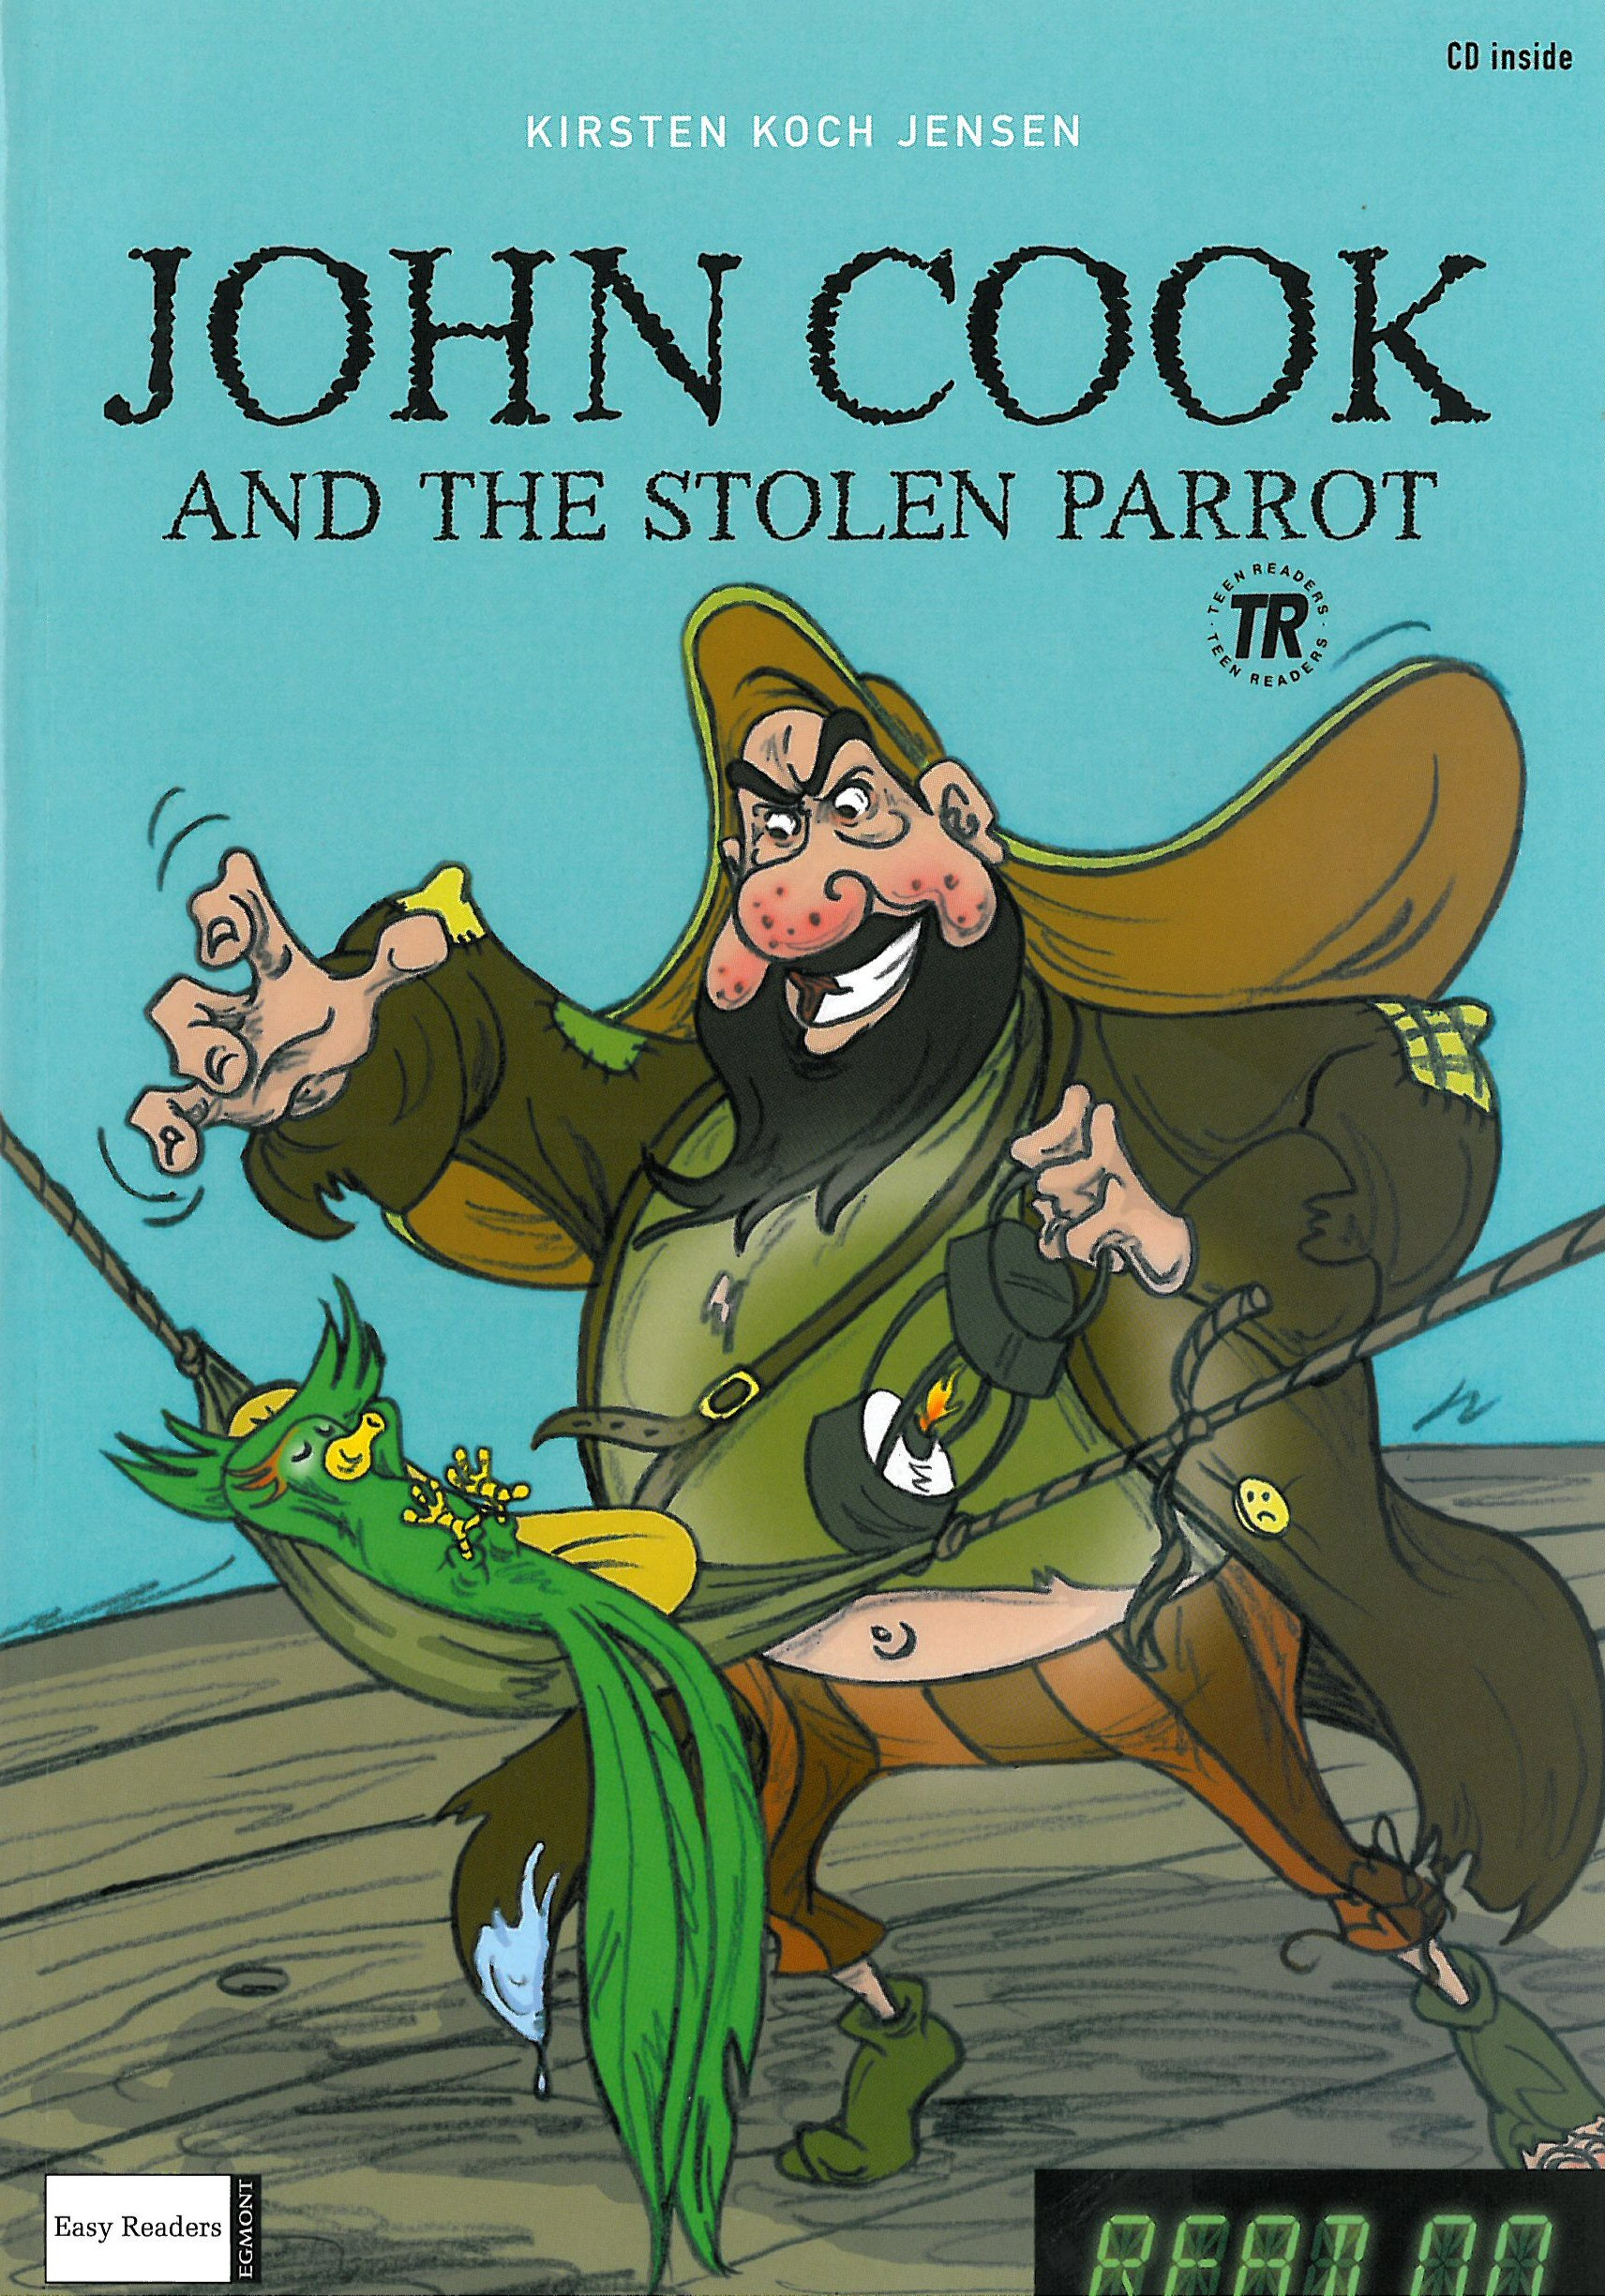 John Cook and the Stolen Parrot/John Cook Opens a Restaurant - READ ON series